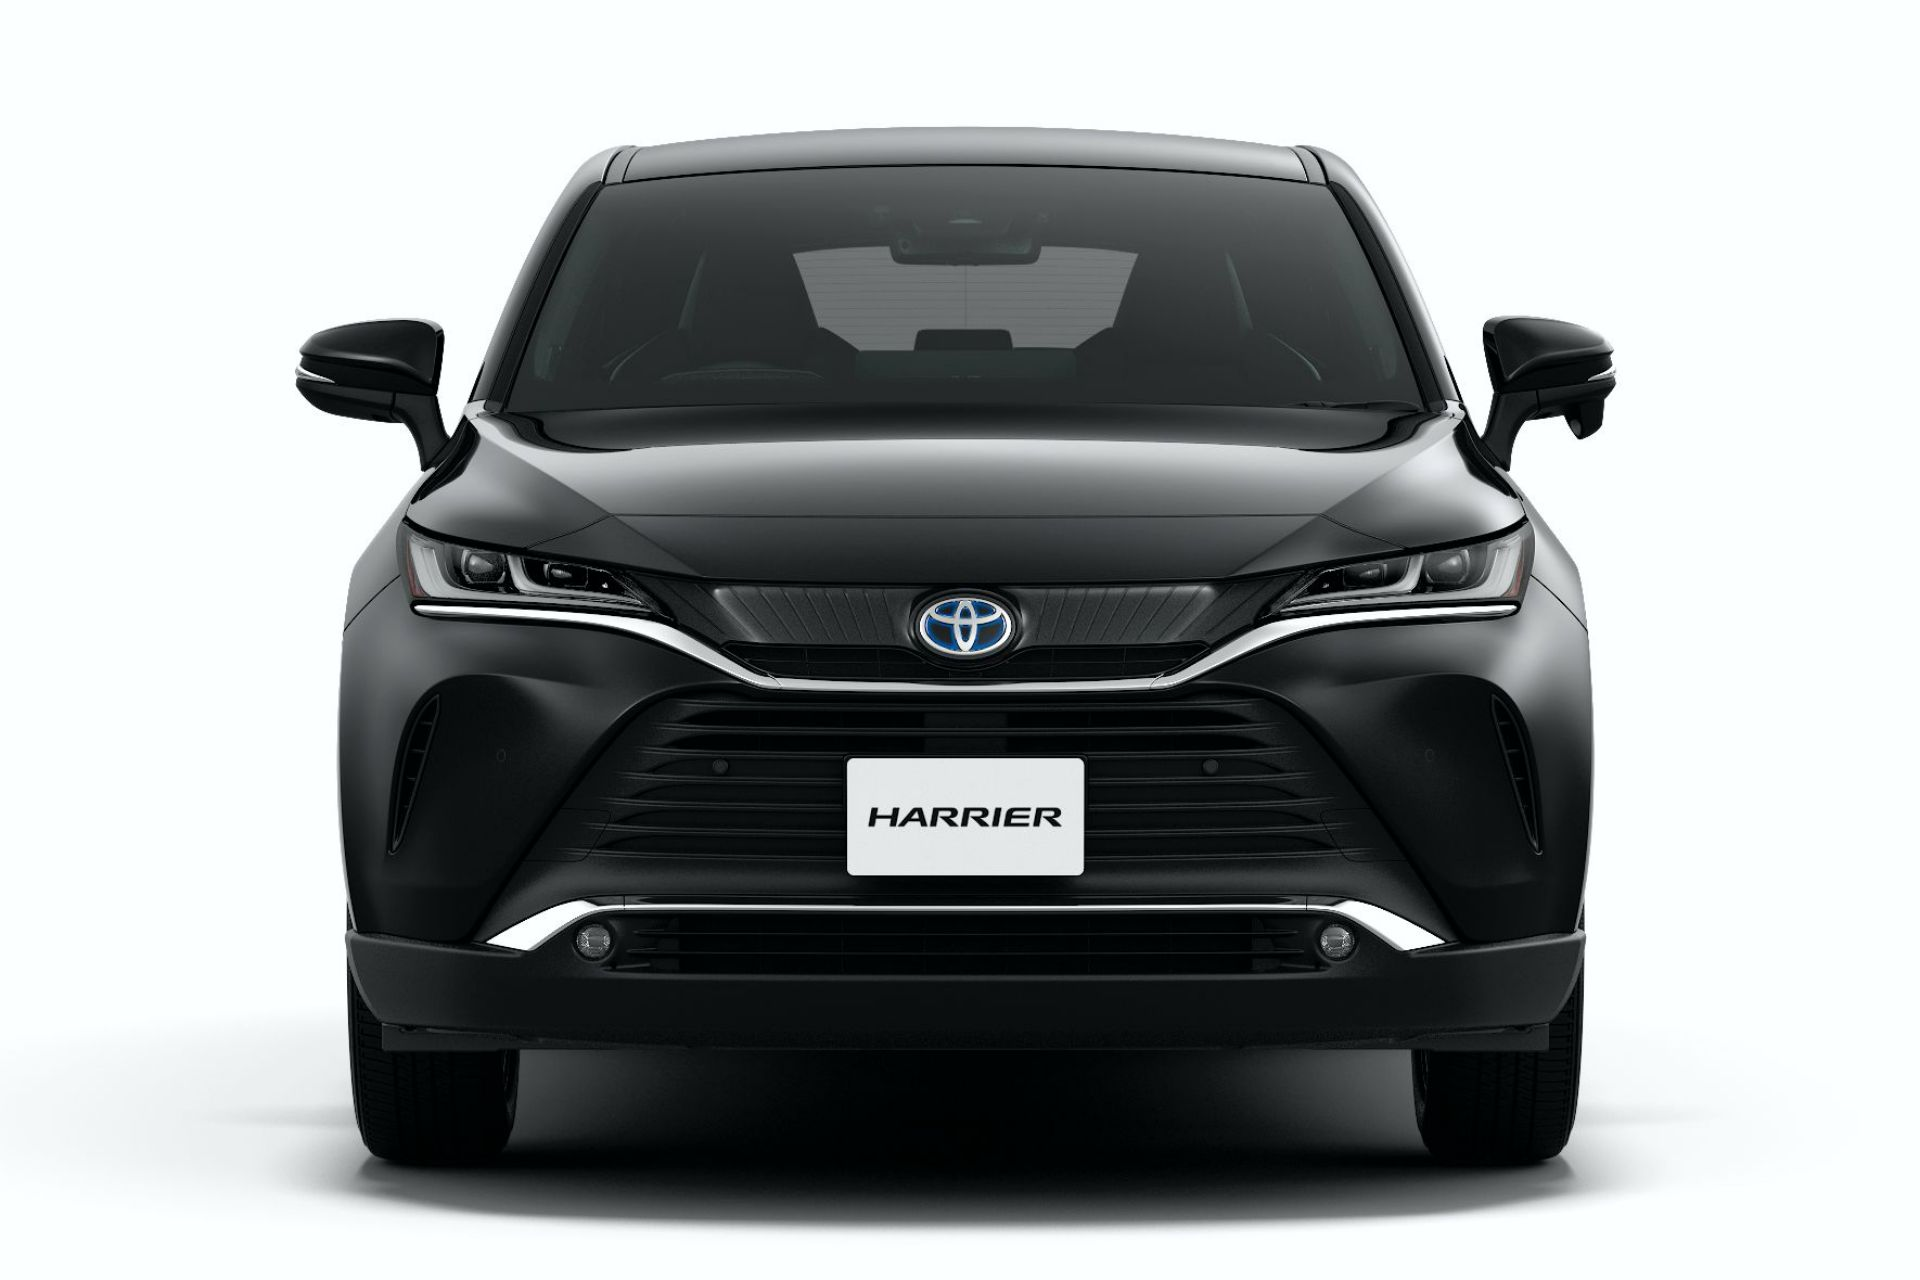 2020_Toyota_Harrier_0019